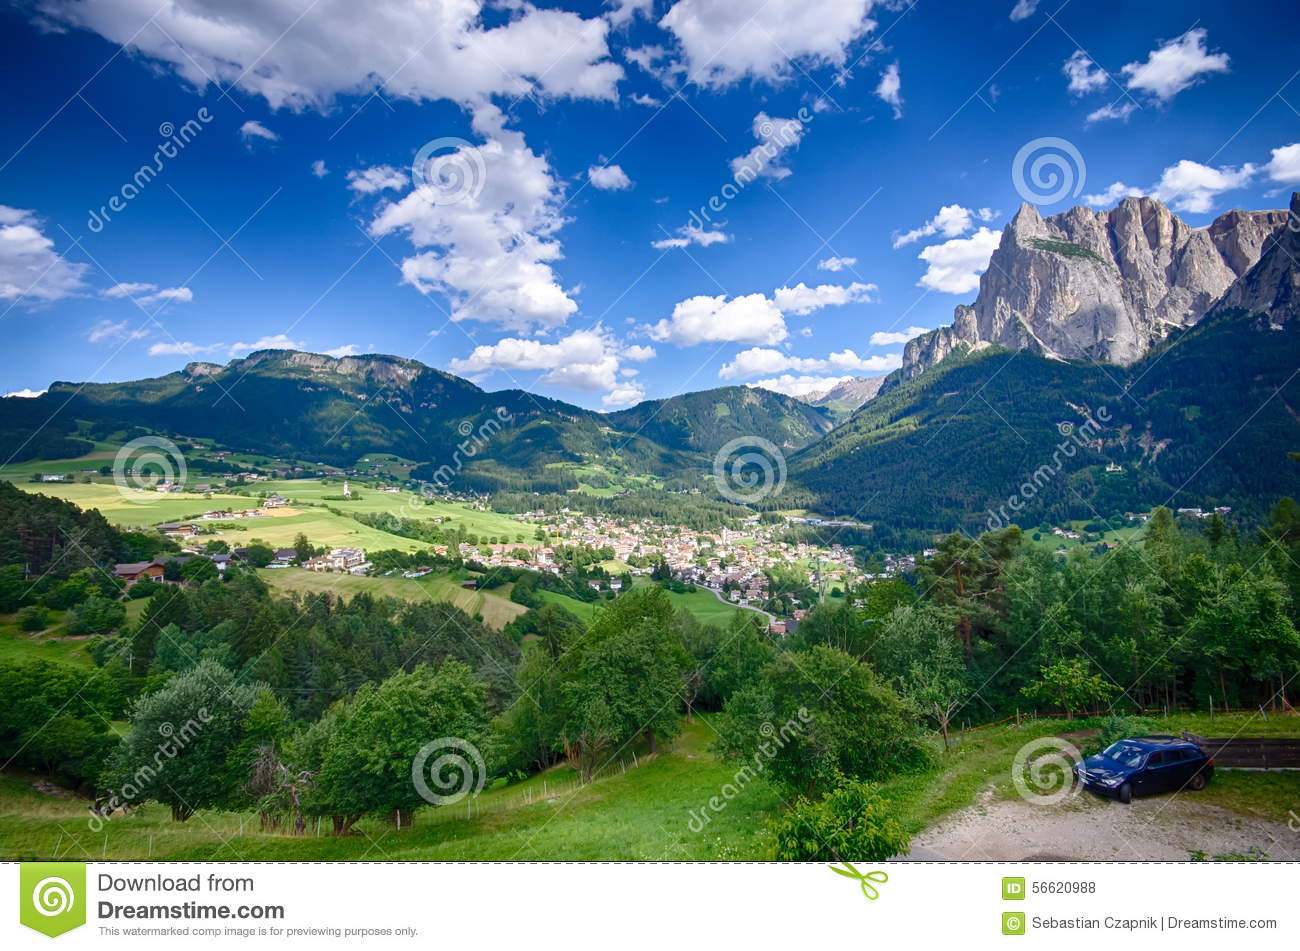 Alpes italiens paysage de ville d 39 alpe di siusi photo for Paysage de ville